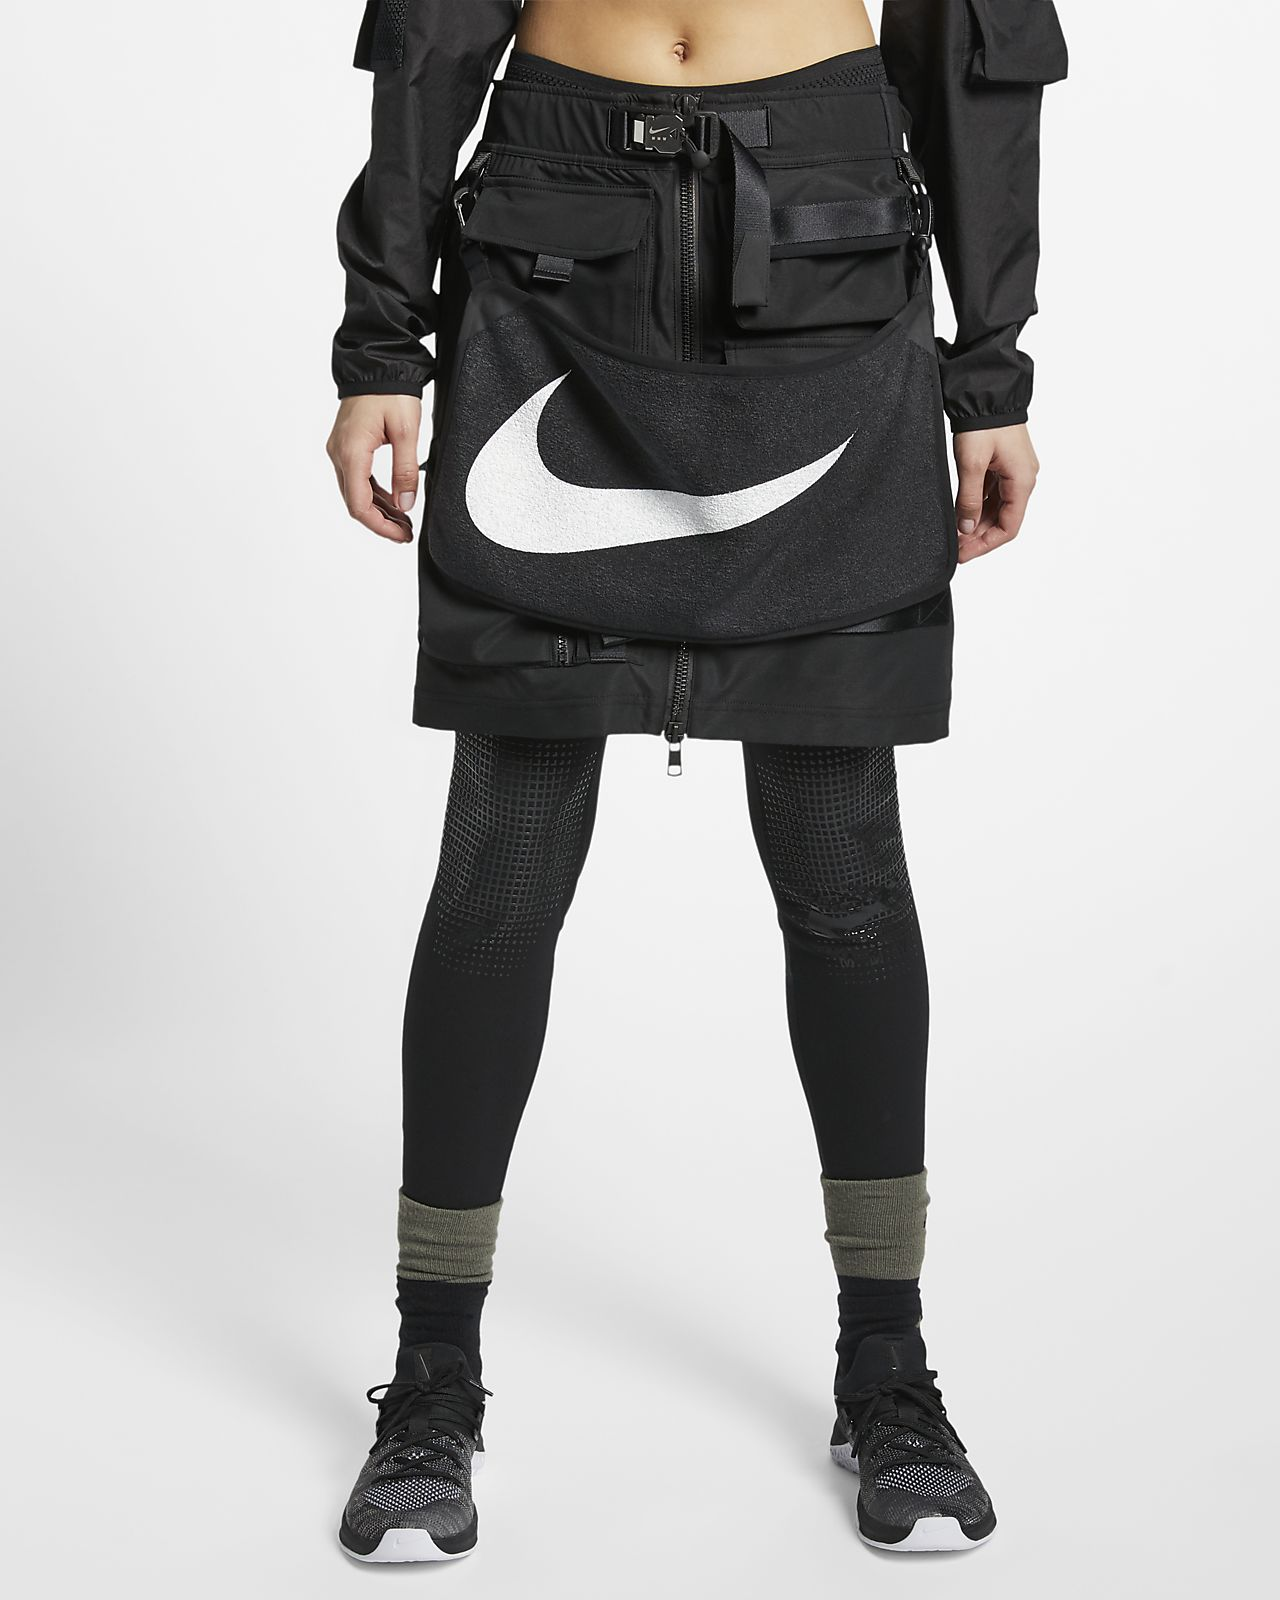 Nike x MMW Women's 2-in-1 Skirt